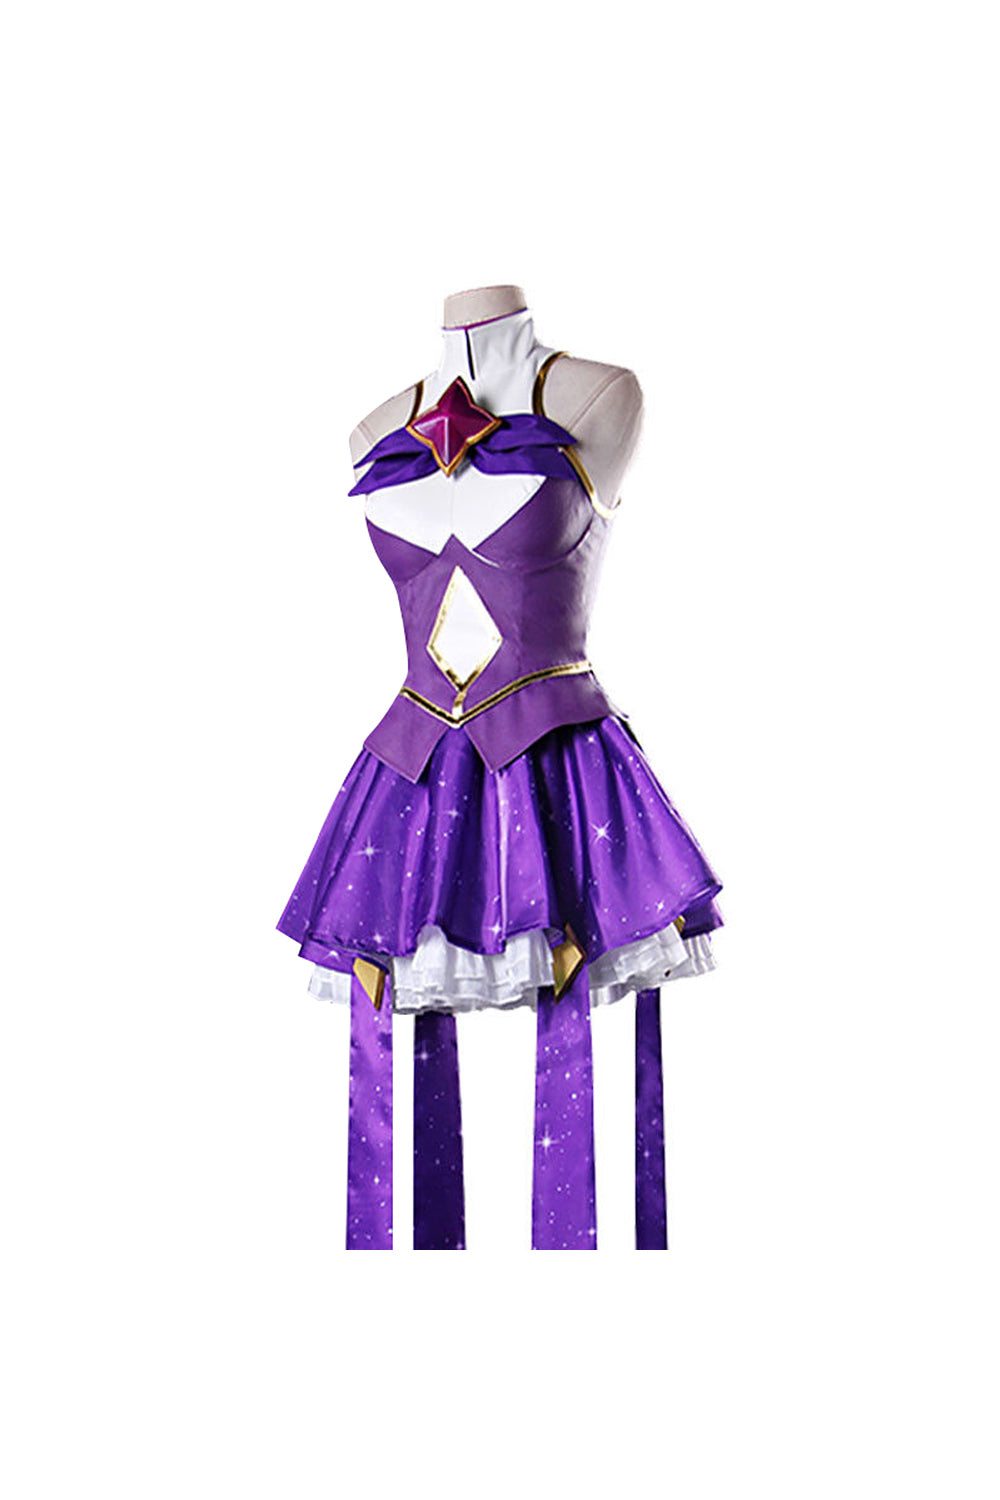 LoL League of Legends Syndra The Dark Sovereign Kleid Cosplay Kostüm